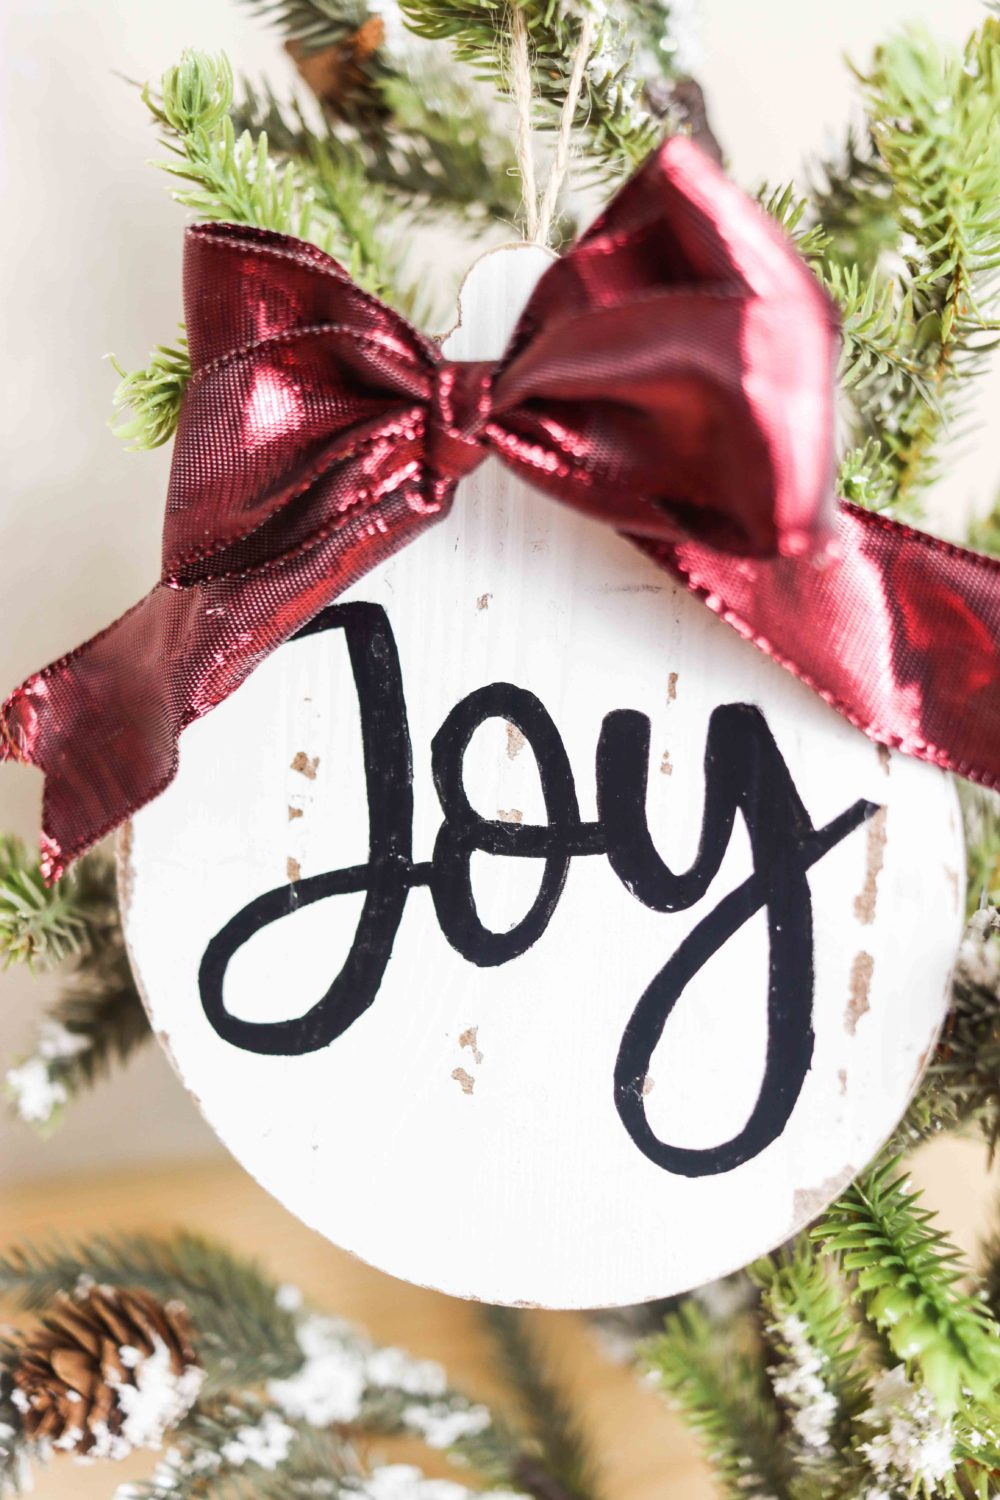 Beautiful wooden Christmas Ornament hanging on a Christmas Tress